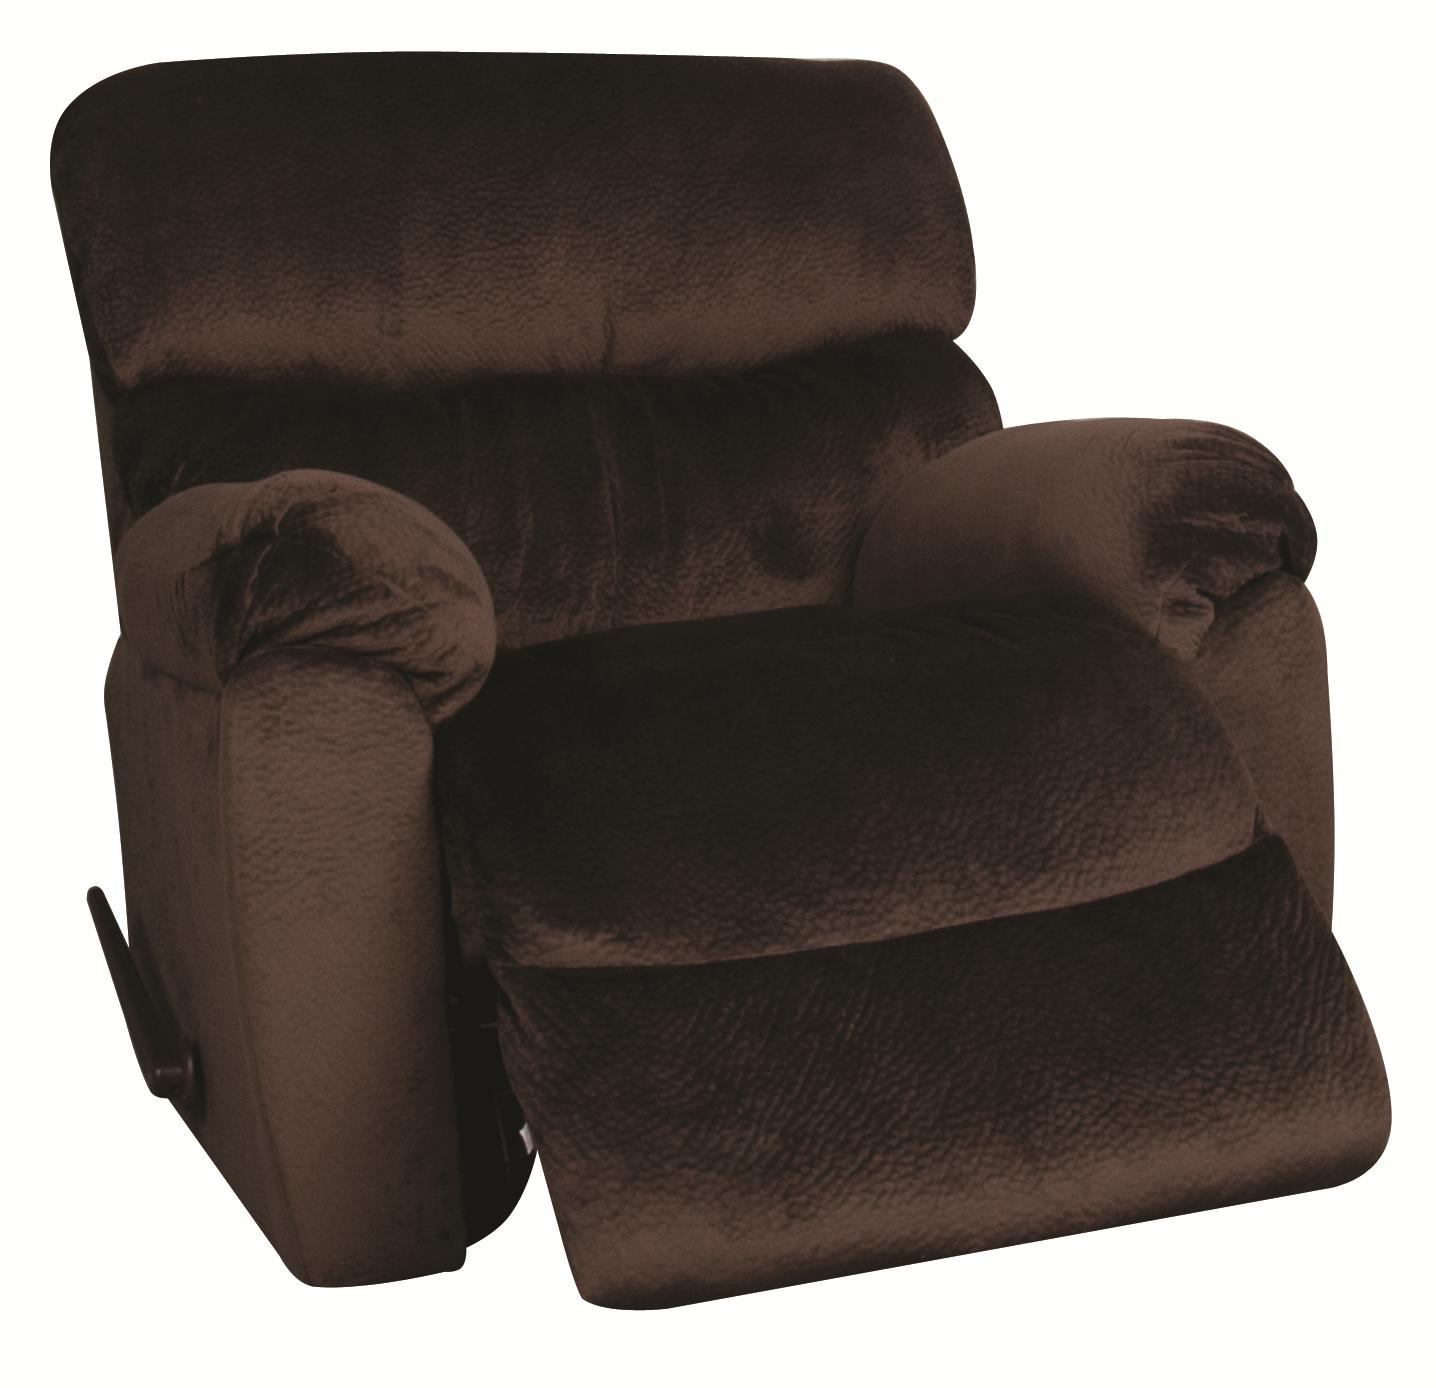 Dakota recliner morris home three way recliner Morris home furniture hours